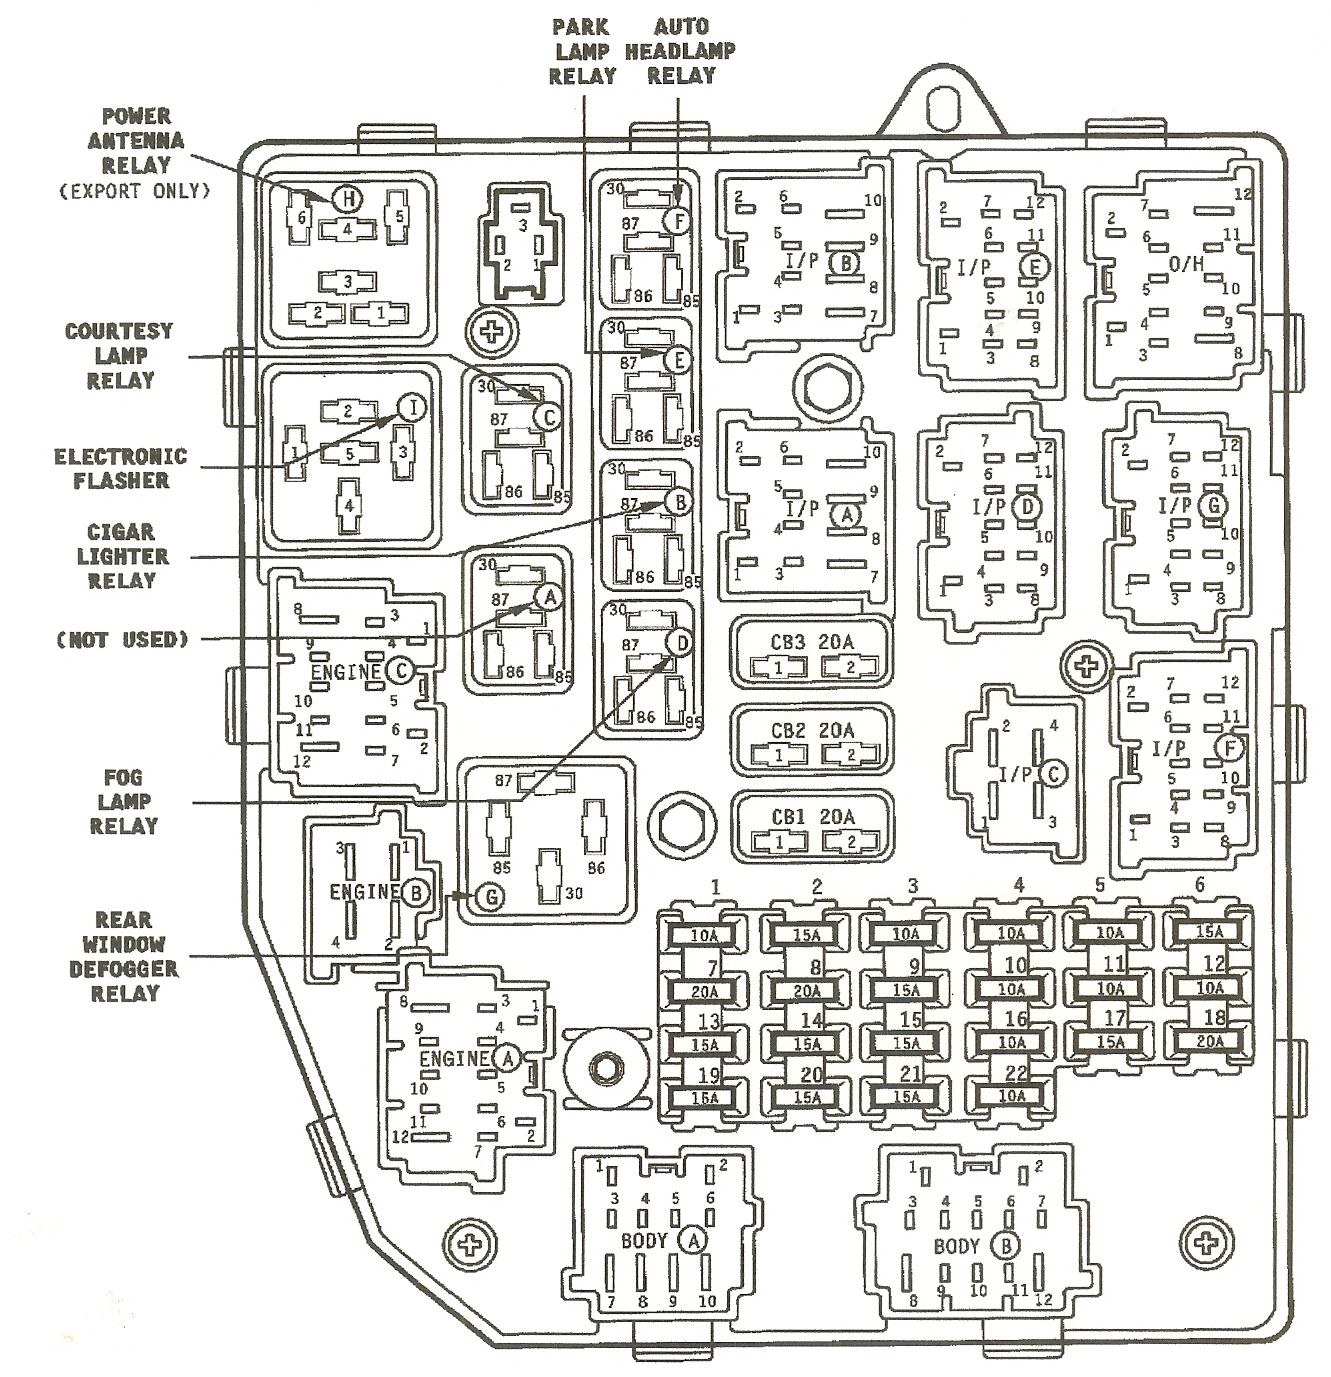 1996 jeep grand cherokee limited fuse box wiring diagram blogs 2000 ford windstar interior fuse box diagram 1996 jeep grand cherokee interior fuse box  [ 1331 x 1377 Pixel ]